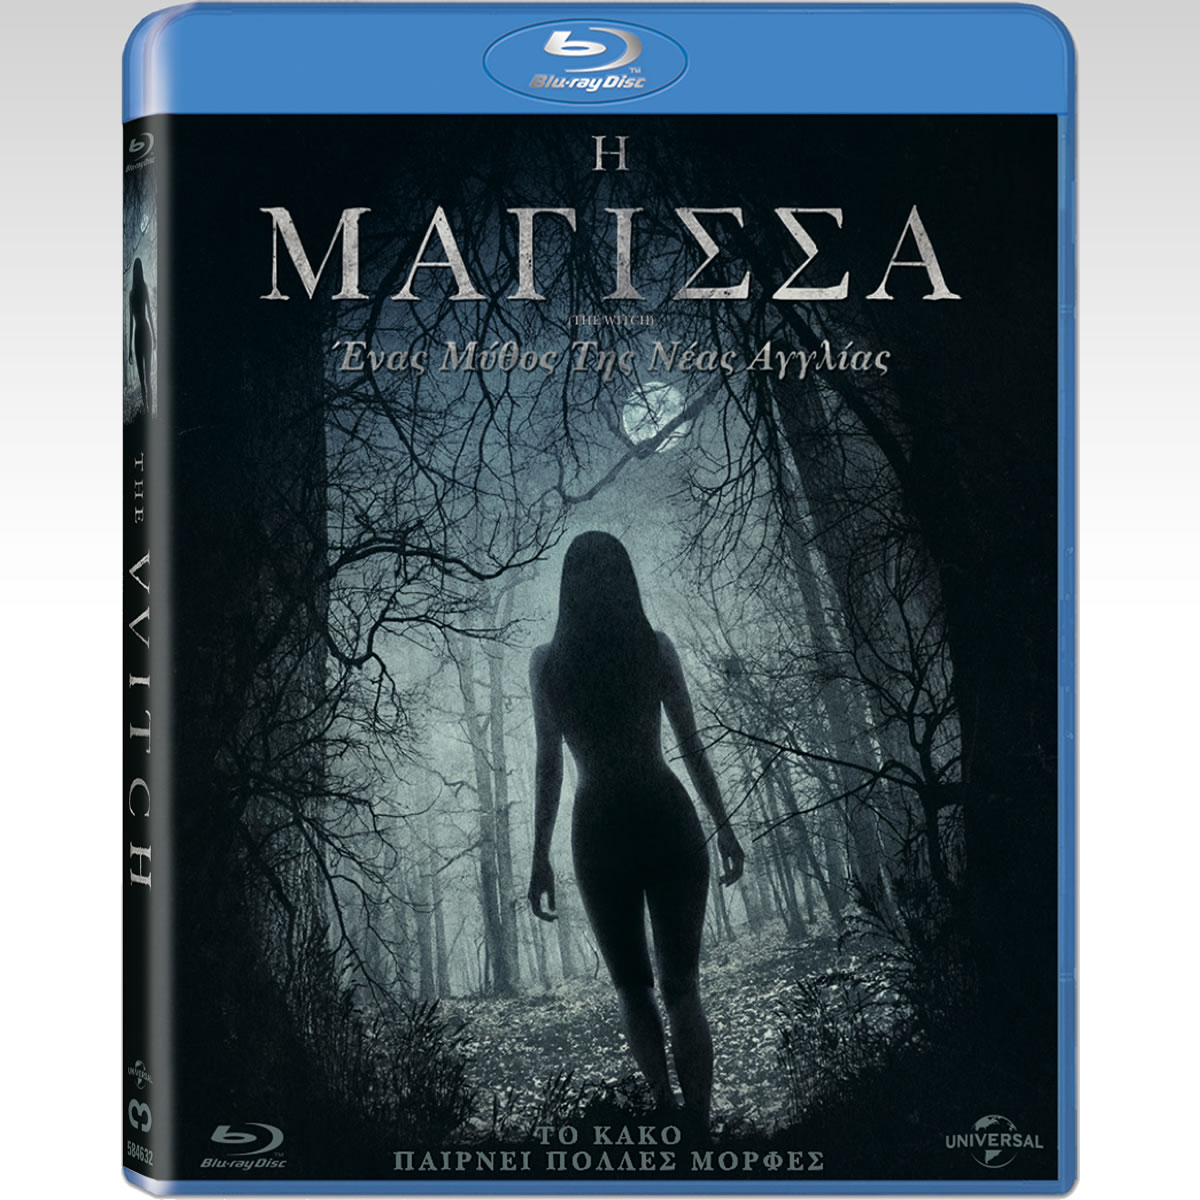 THE WITCH - THE VVITCH - Η ΜΑΓΙΣΣΑ (BLU-RAY)